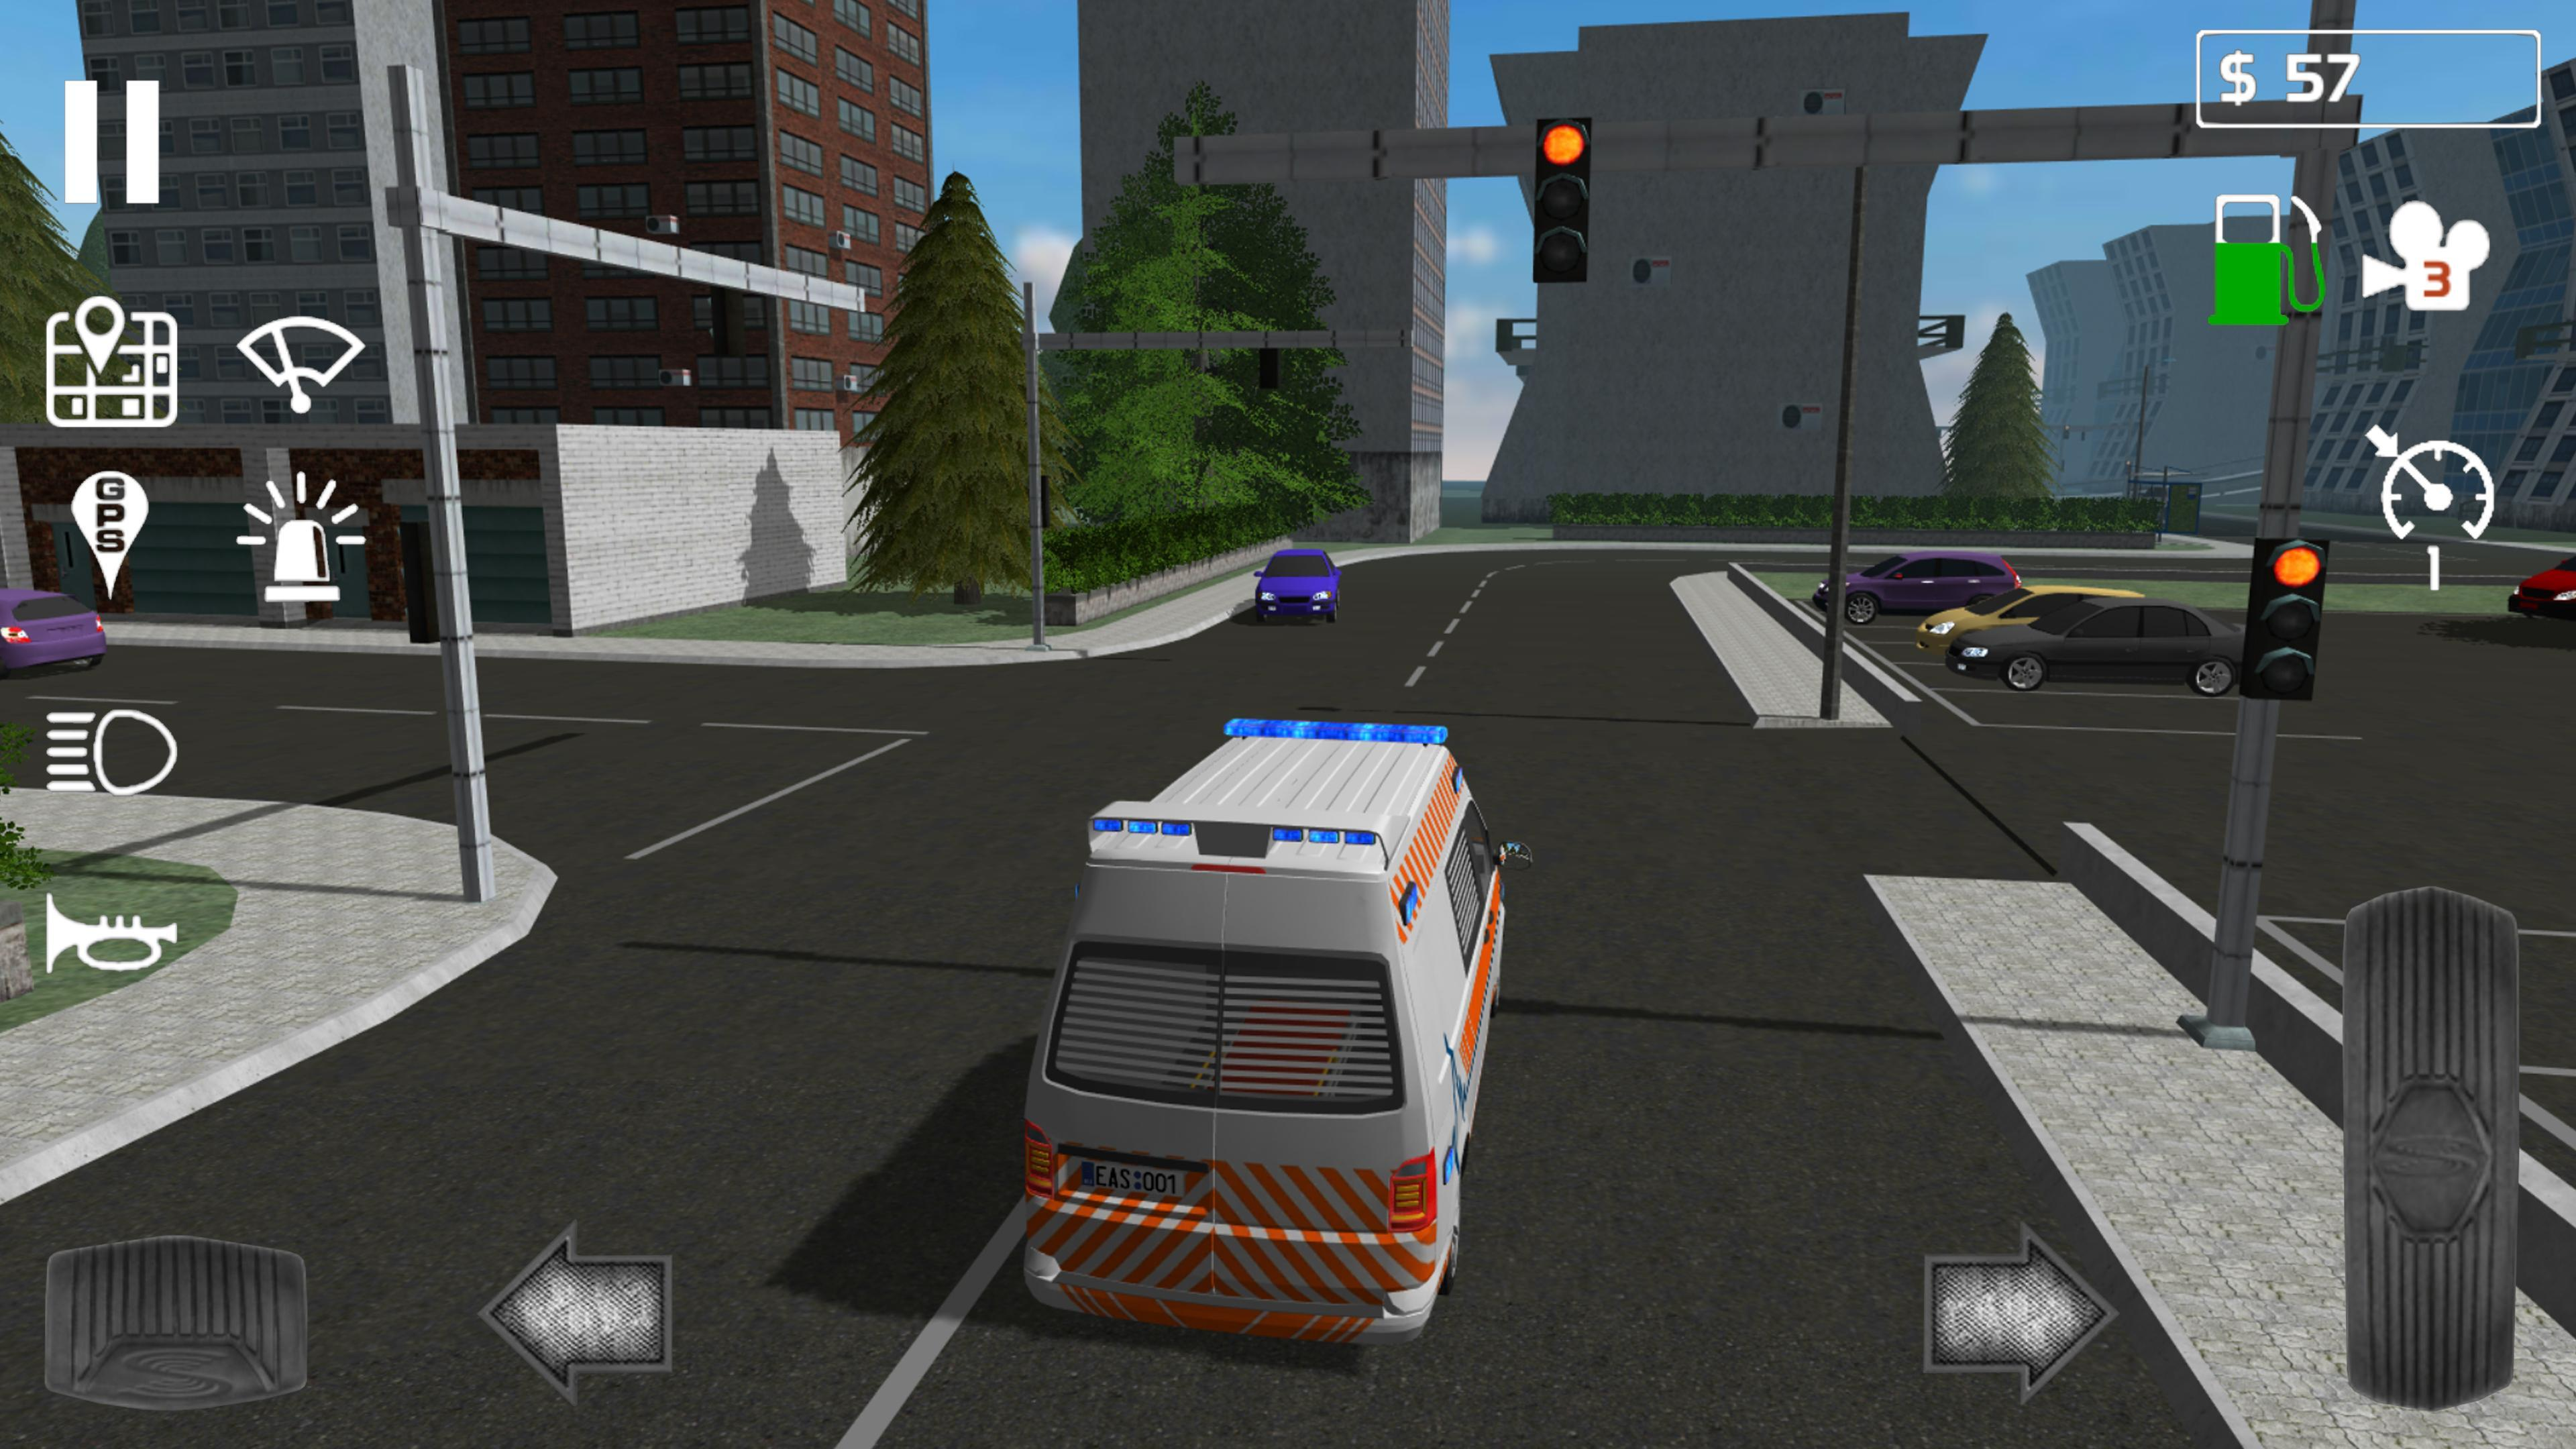 Emergency Ambulance Simulator for Android - APK Download